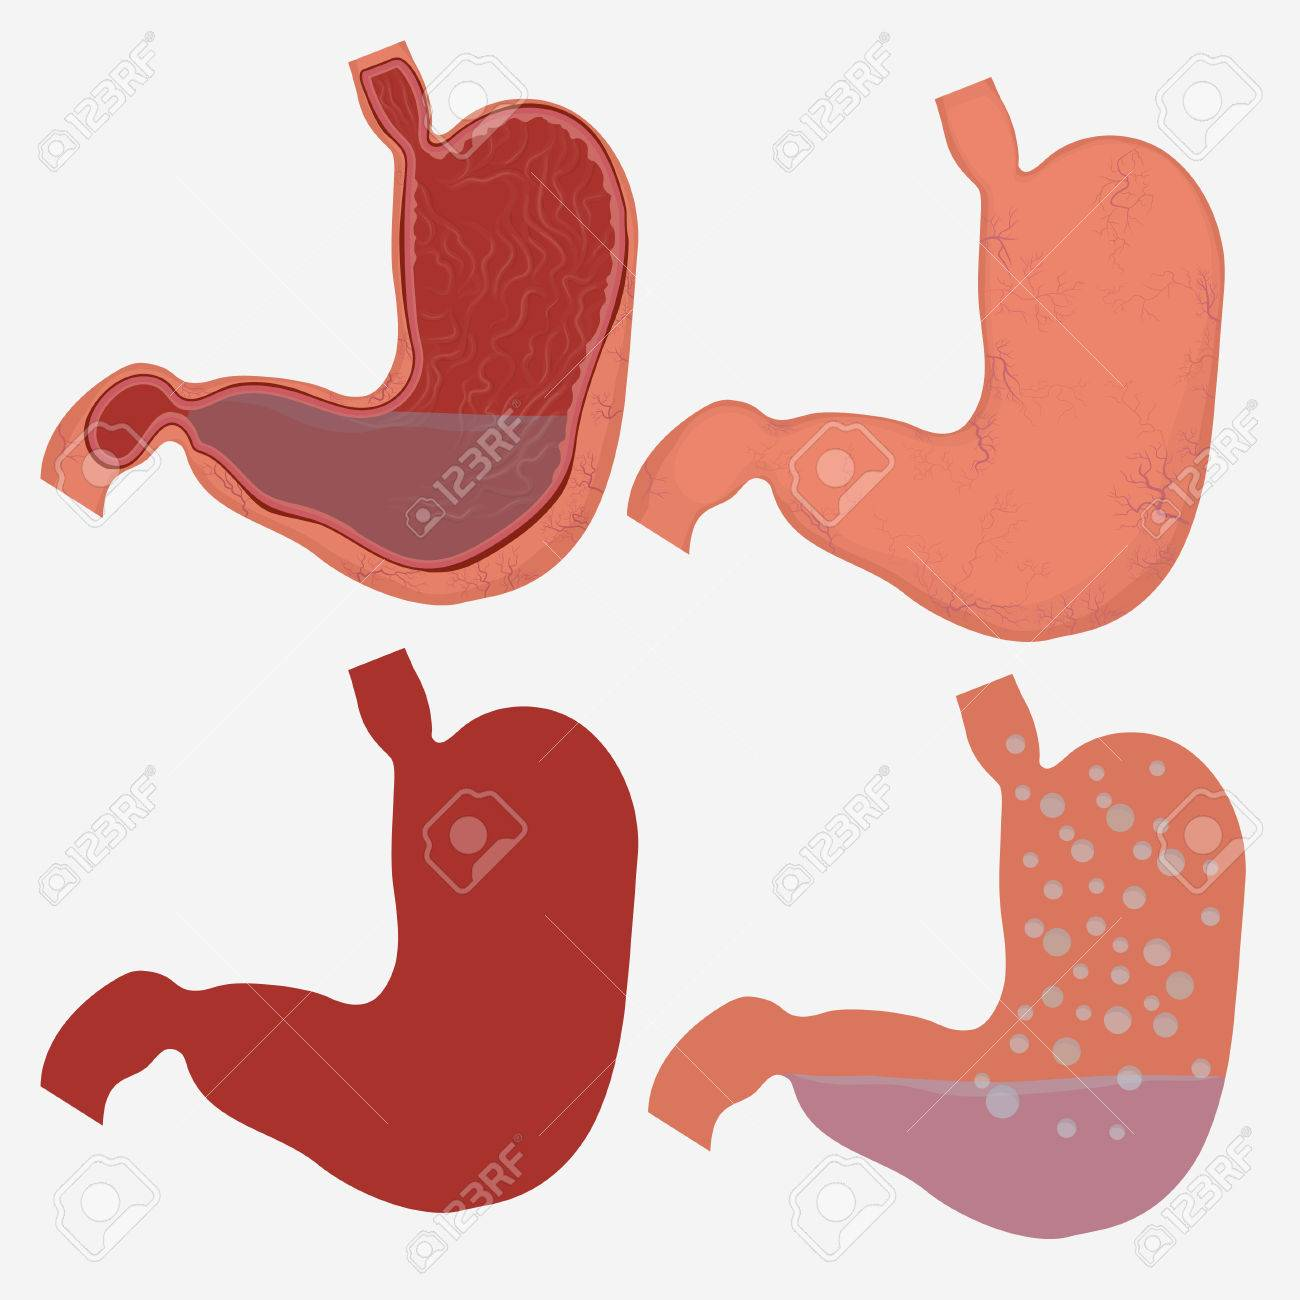 Stomach Vector Digestive Diagram Set Human Anatomy Image Illness